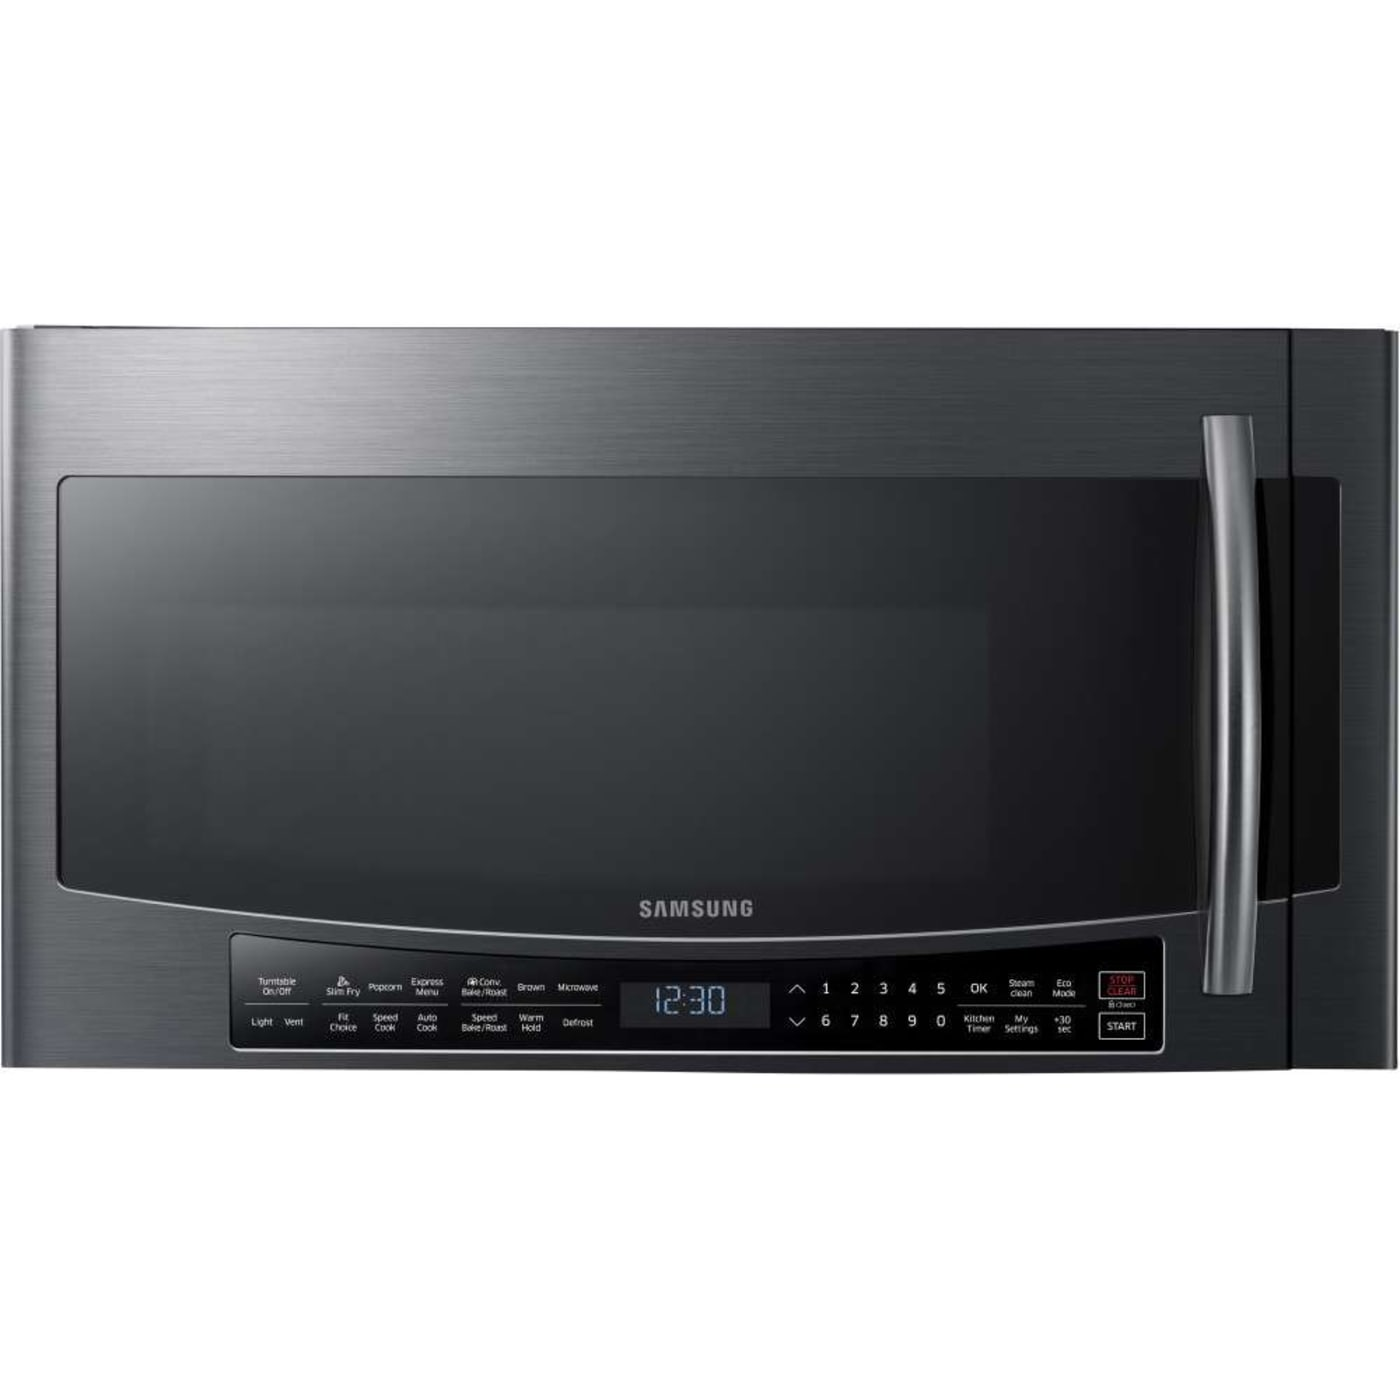 Samsung MC17J8000CG 1 7 Cu Ft Black Stainless Steel Over the Range